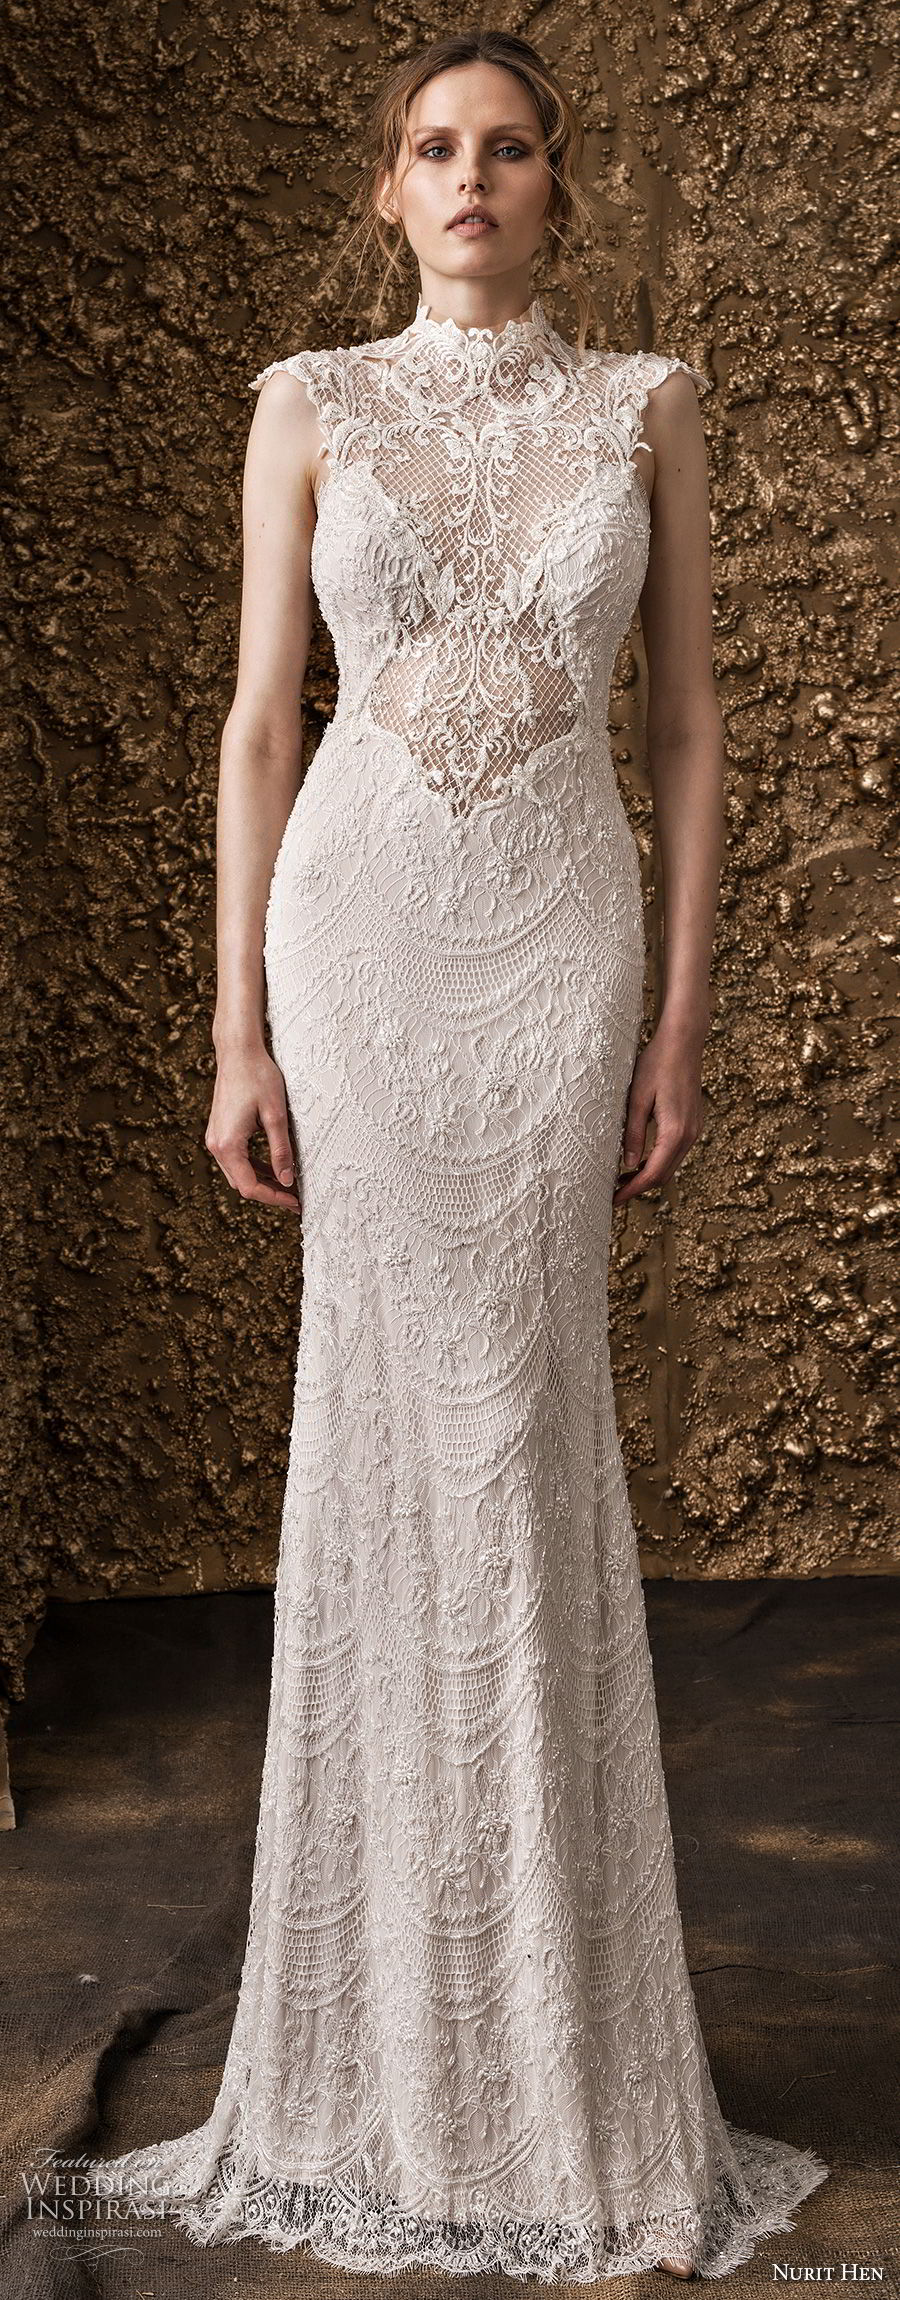 nurit hen 2018 bridal cap sleeves high jewel neck full embellishment elegant sheath wedding dress lace back sweep train (15) mv